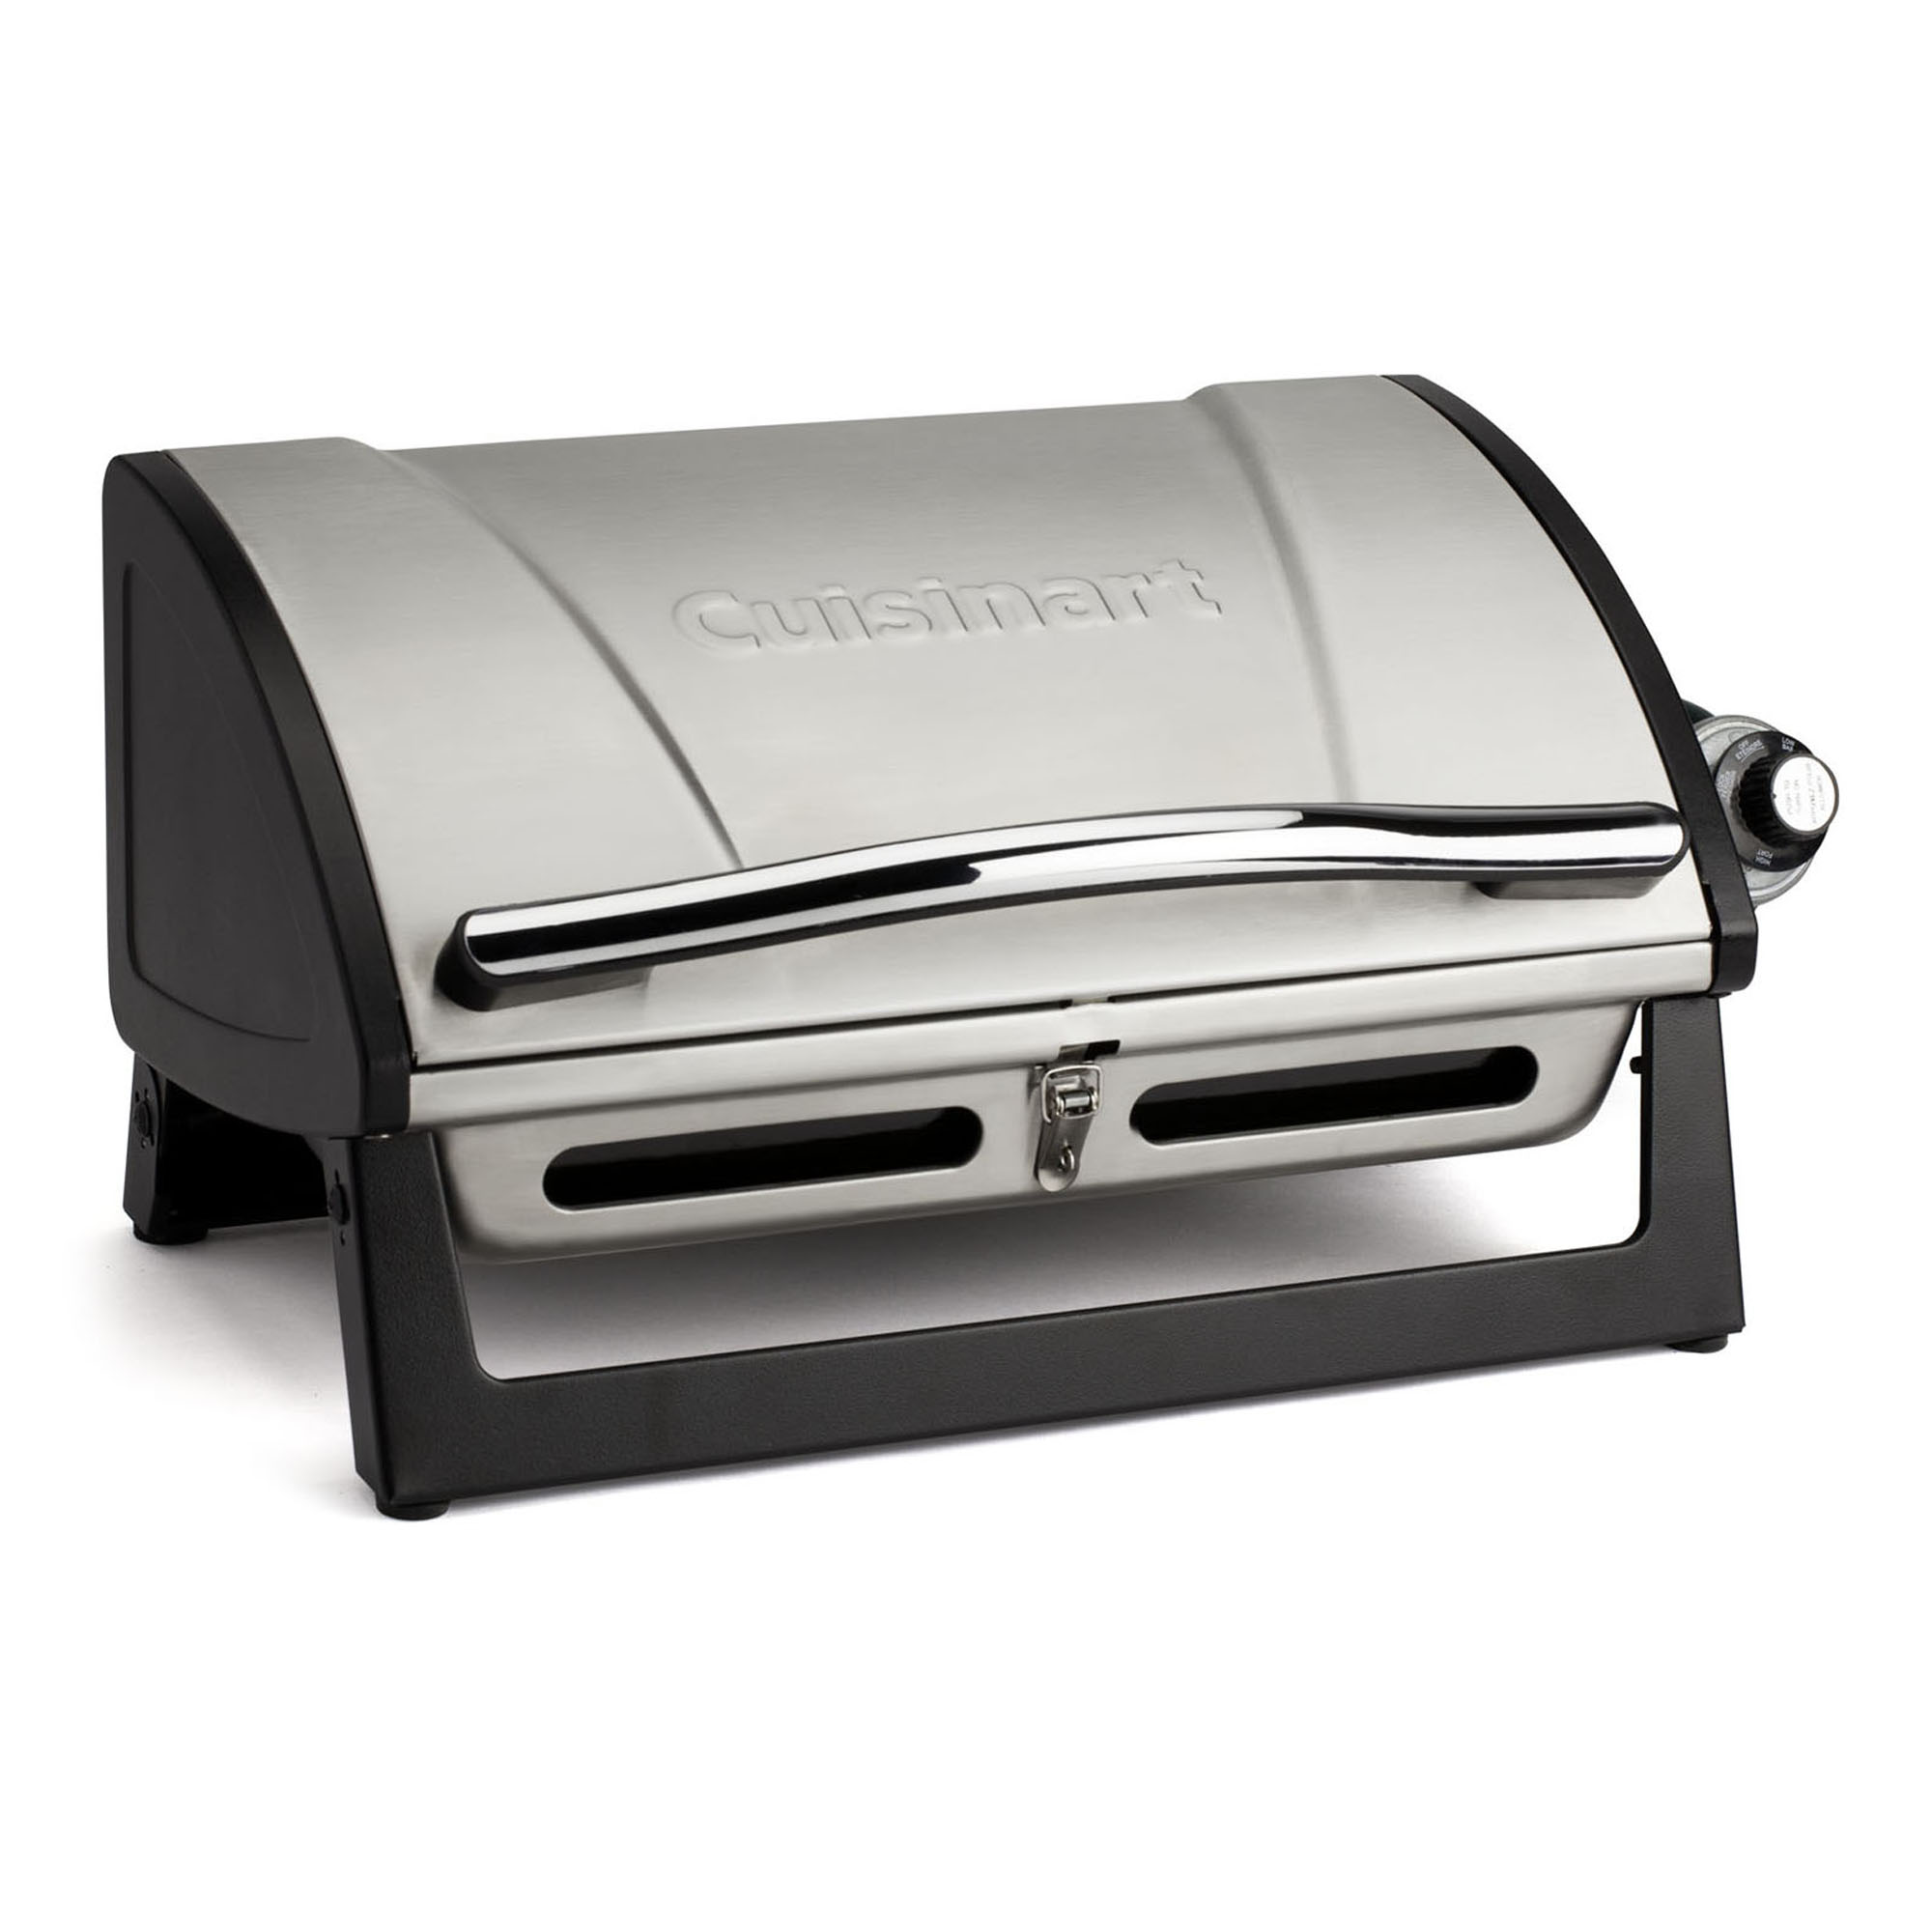 Cuisinart Grillster Portable Gas Grill by Cuisinart